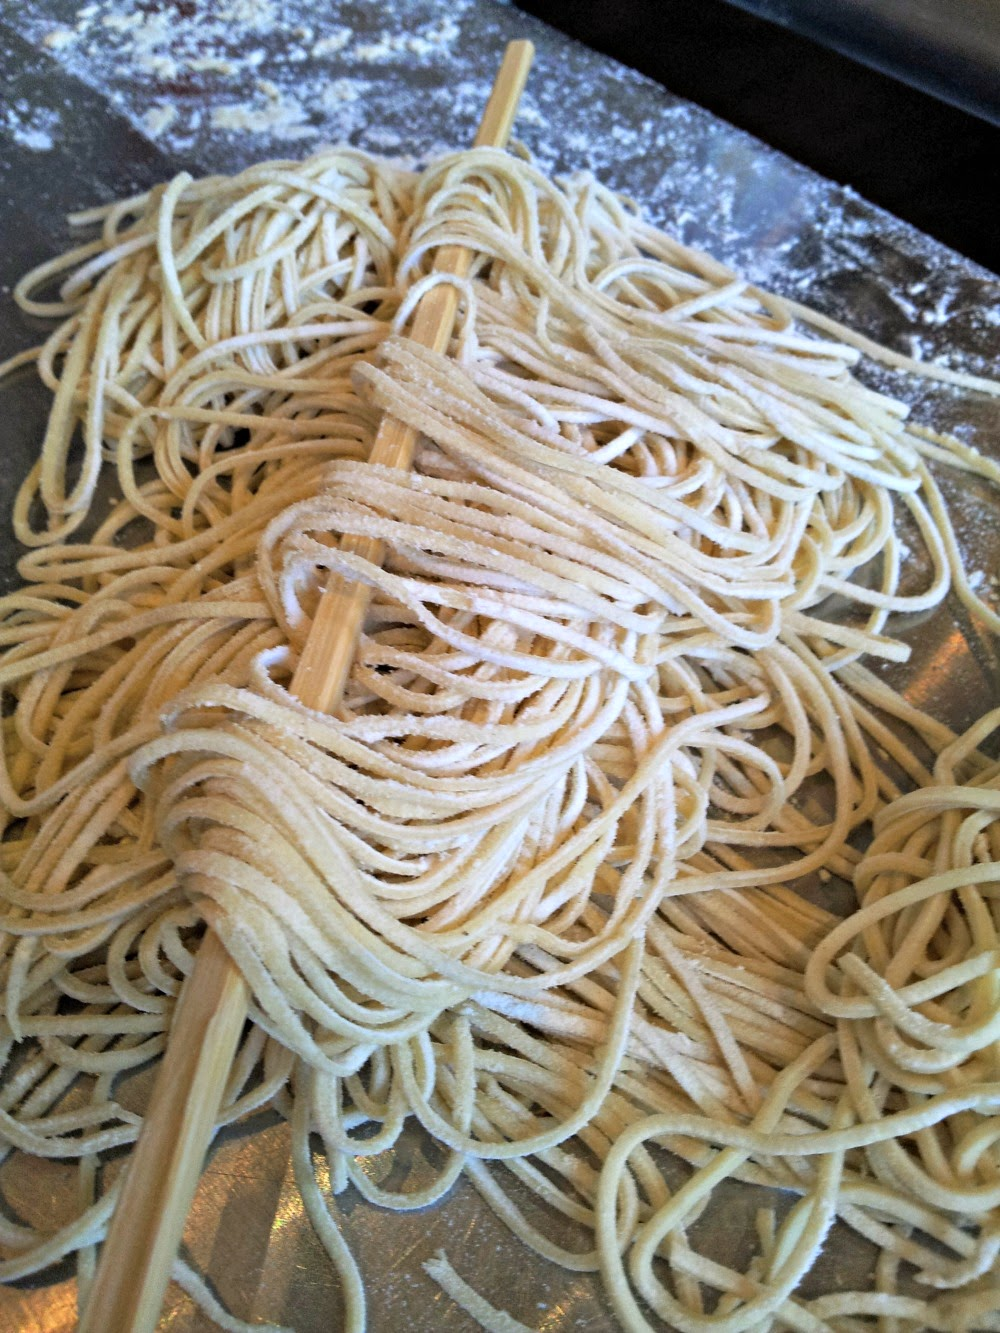 Ramen Noodle making class: Shop Local Raleigh Event